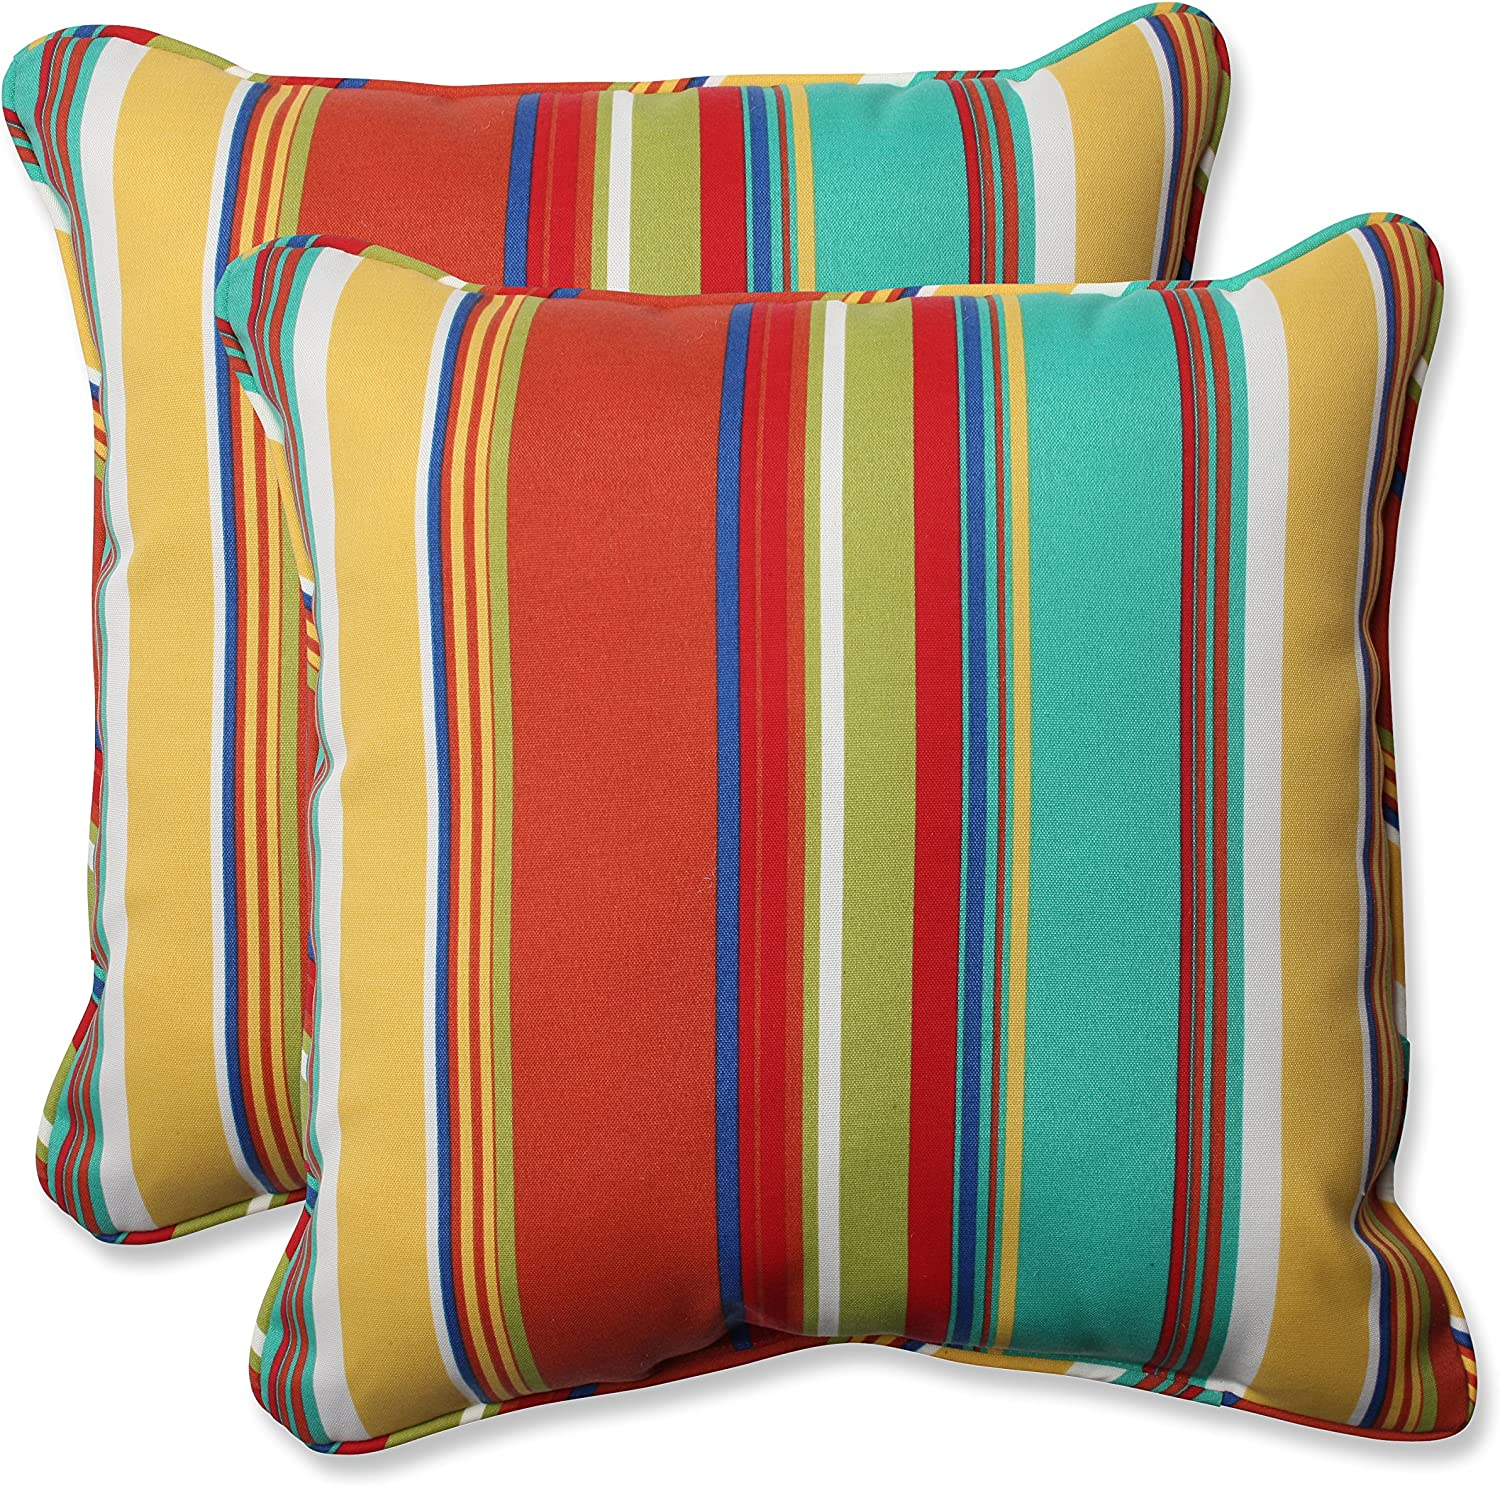 """Pillow Perfect 575353 Outdoor/Indoor Westport Spring Throw Pillows, 18.5"""" x 18.5"""", Multicolored 2 Pack"""